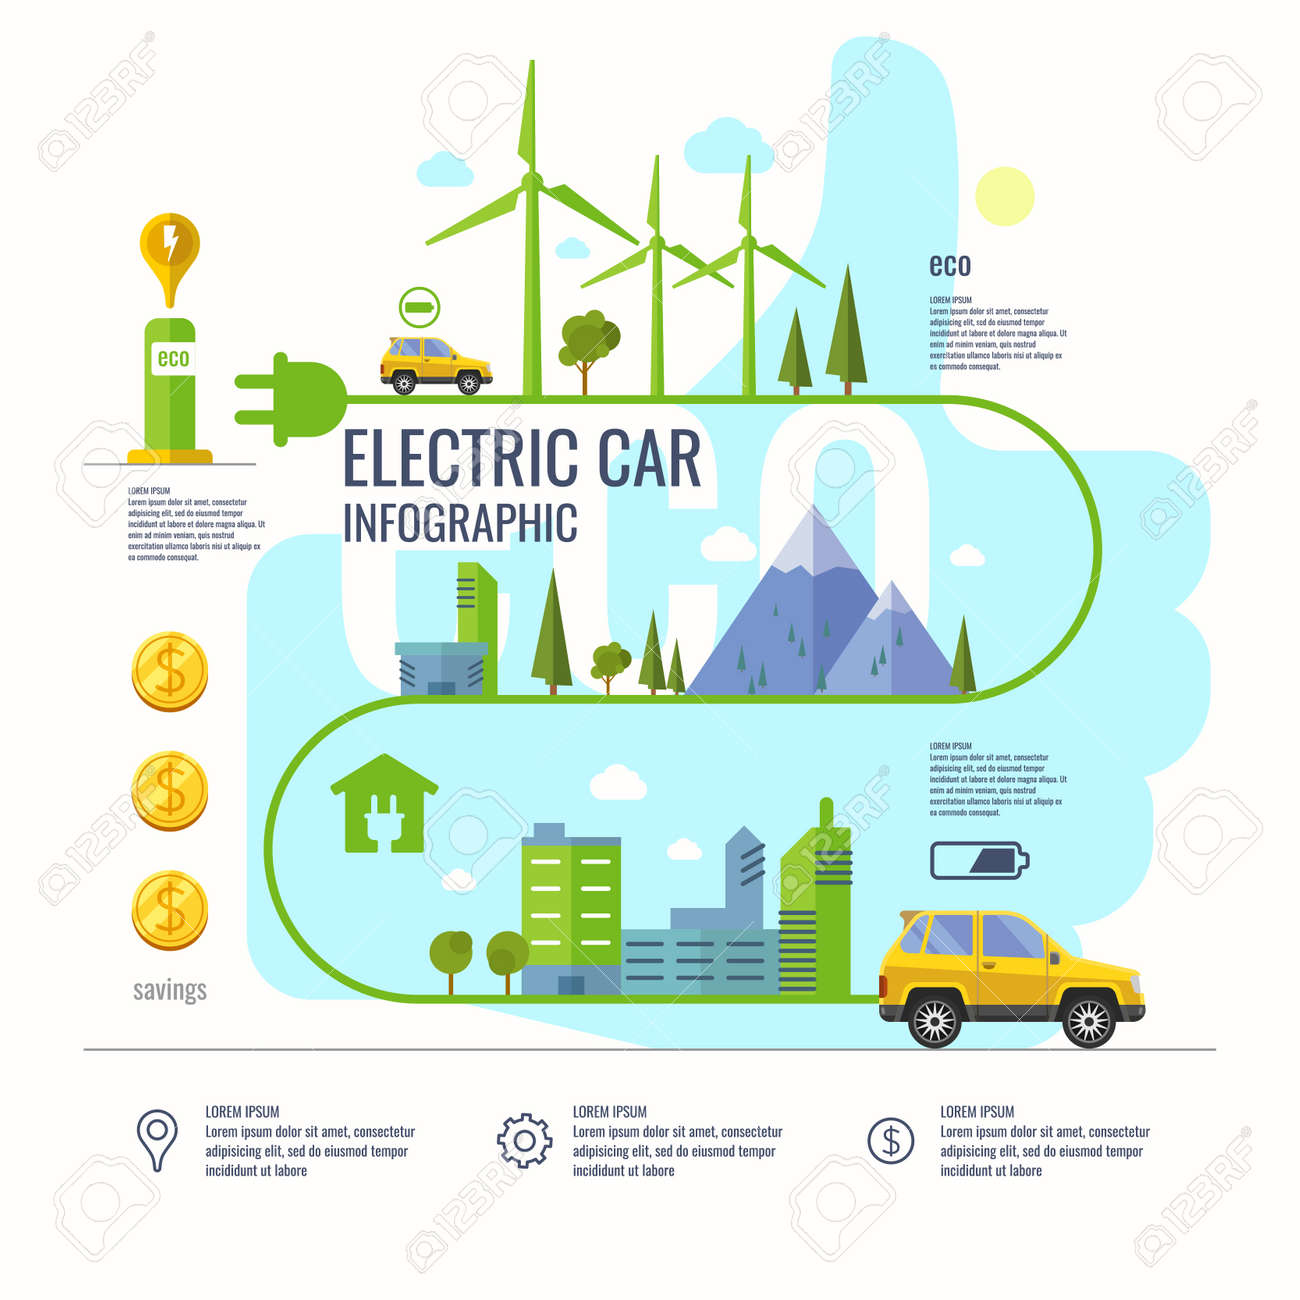 Infographic Poster About Electric Cars Modern Vector Illustration Royalty Free Cliparts Vectors And Stock Illustration Image 53157569